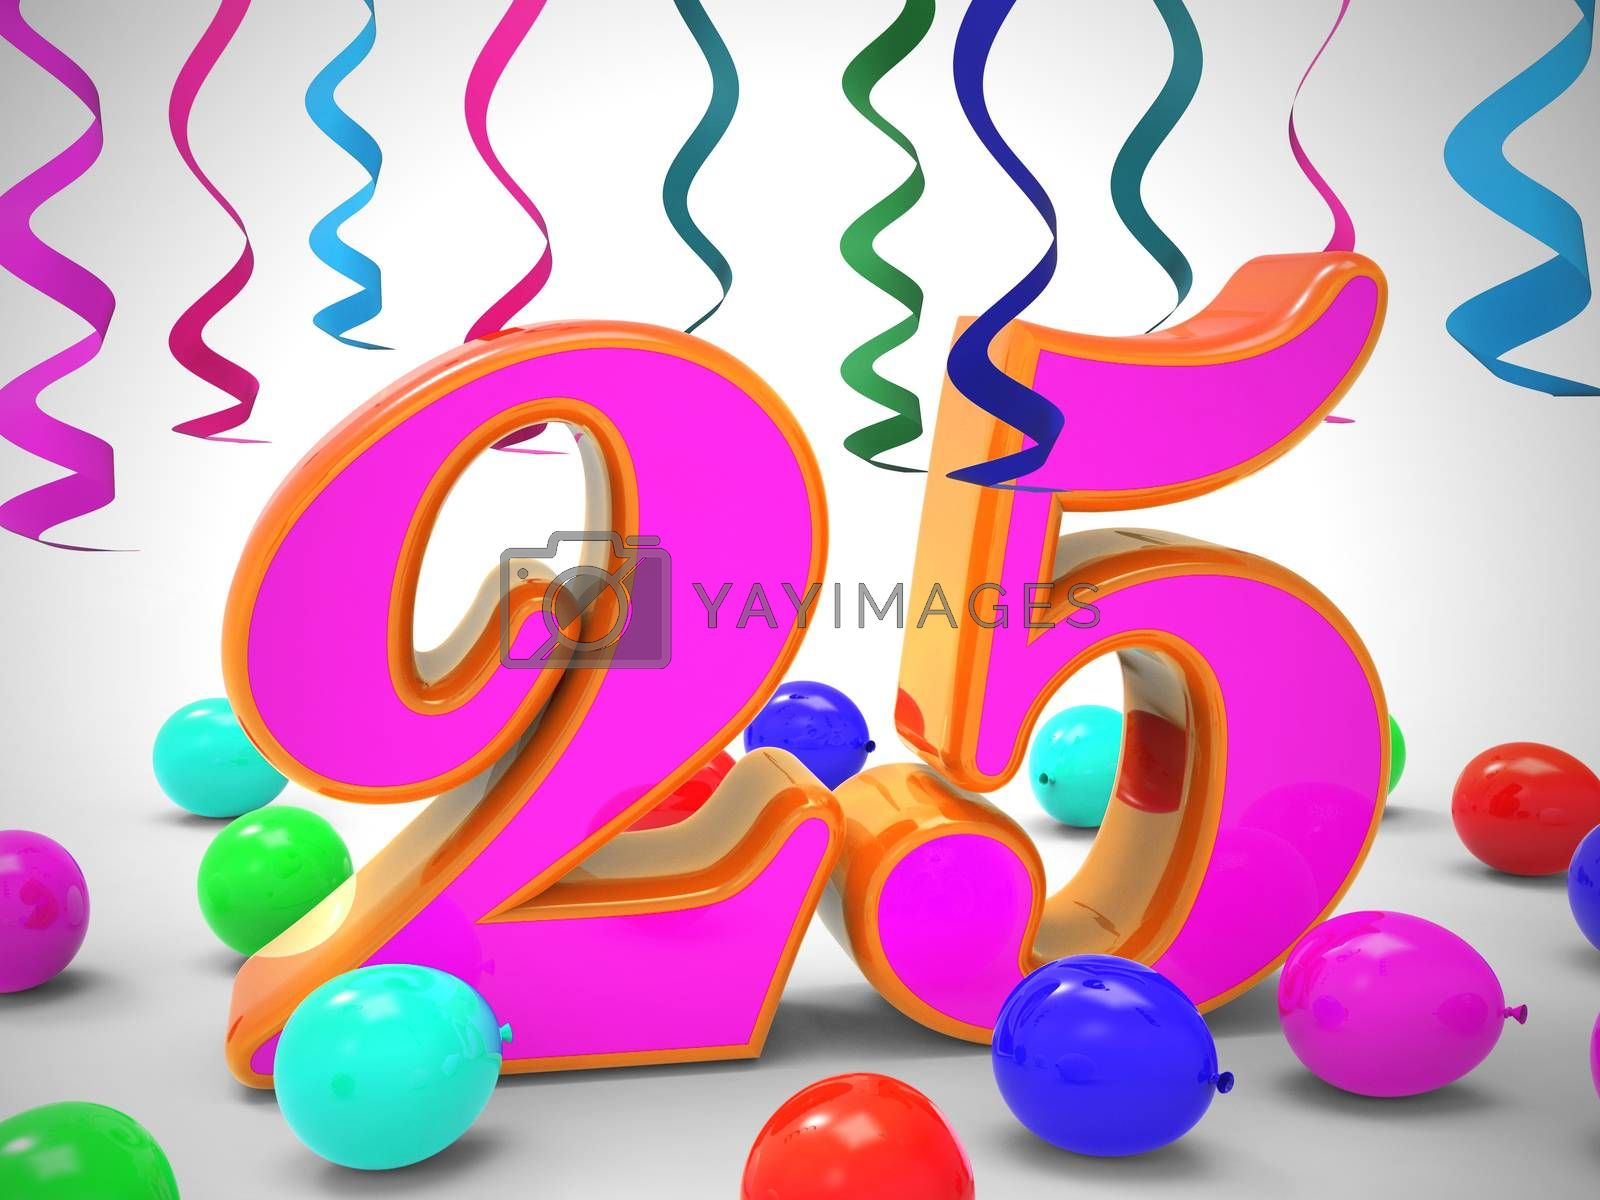 Twenty fifth birthday celebration balloons shows a happy event. Celebrating 25th with a joyful 25 party - 3d illustration